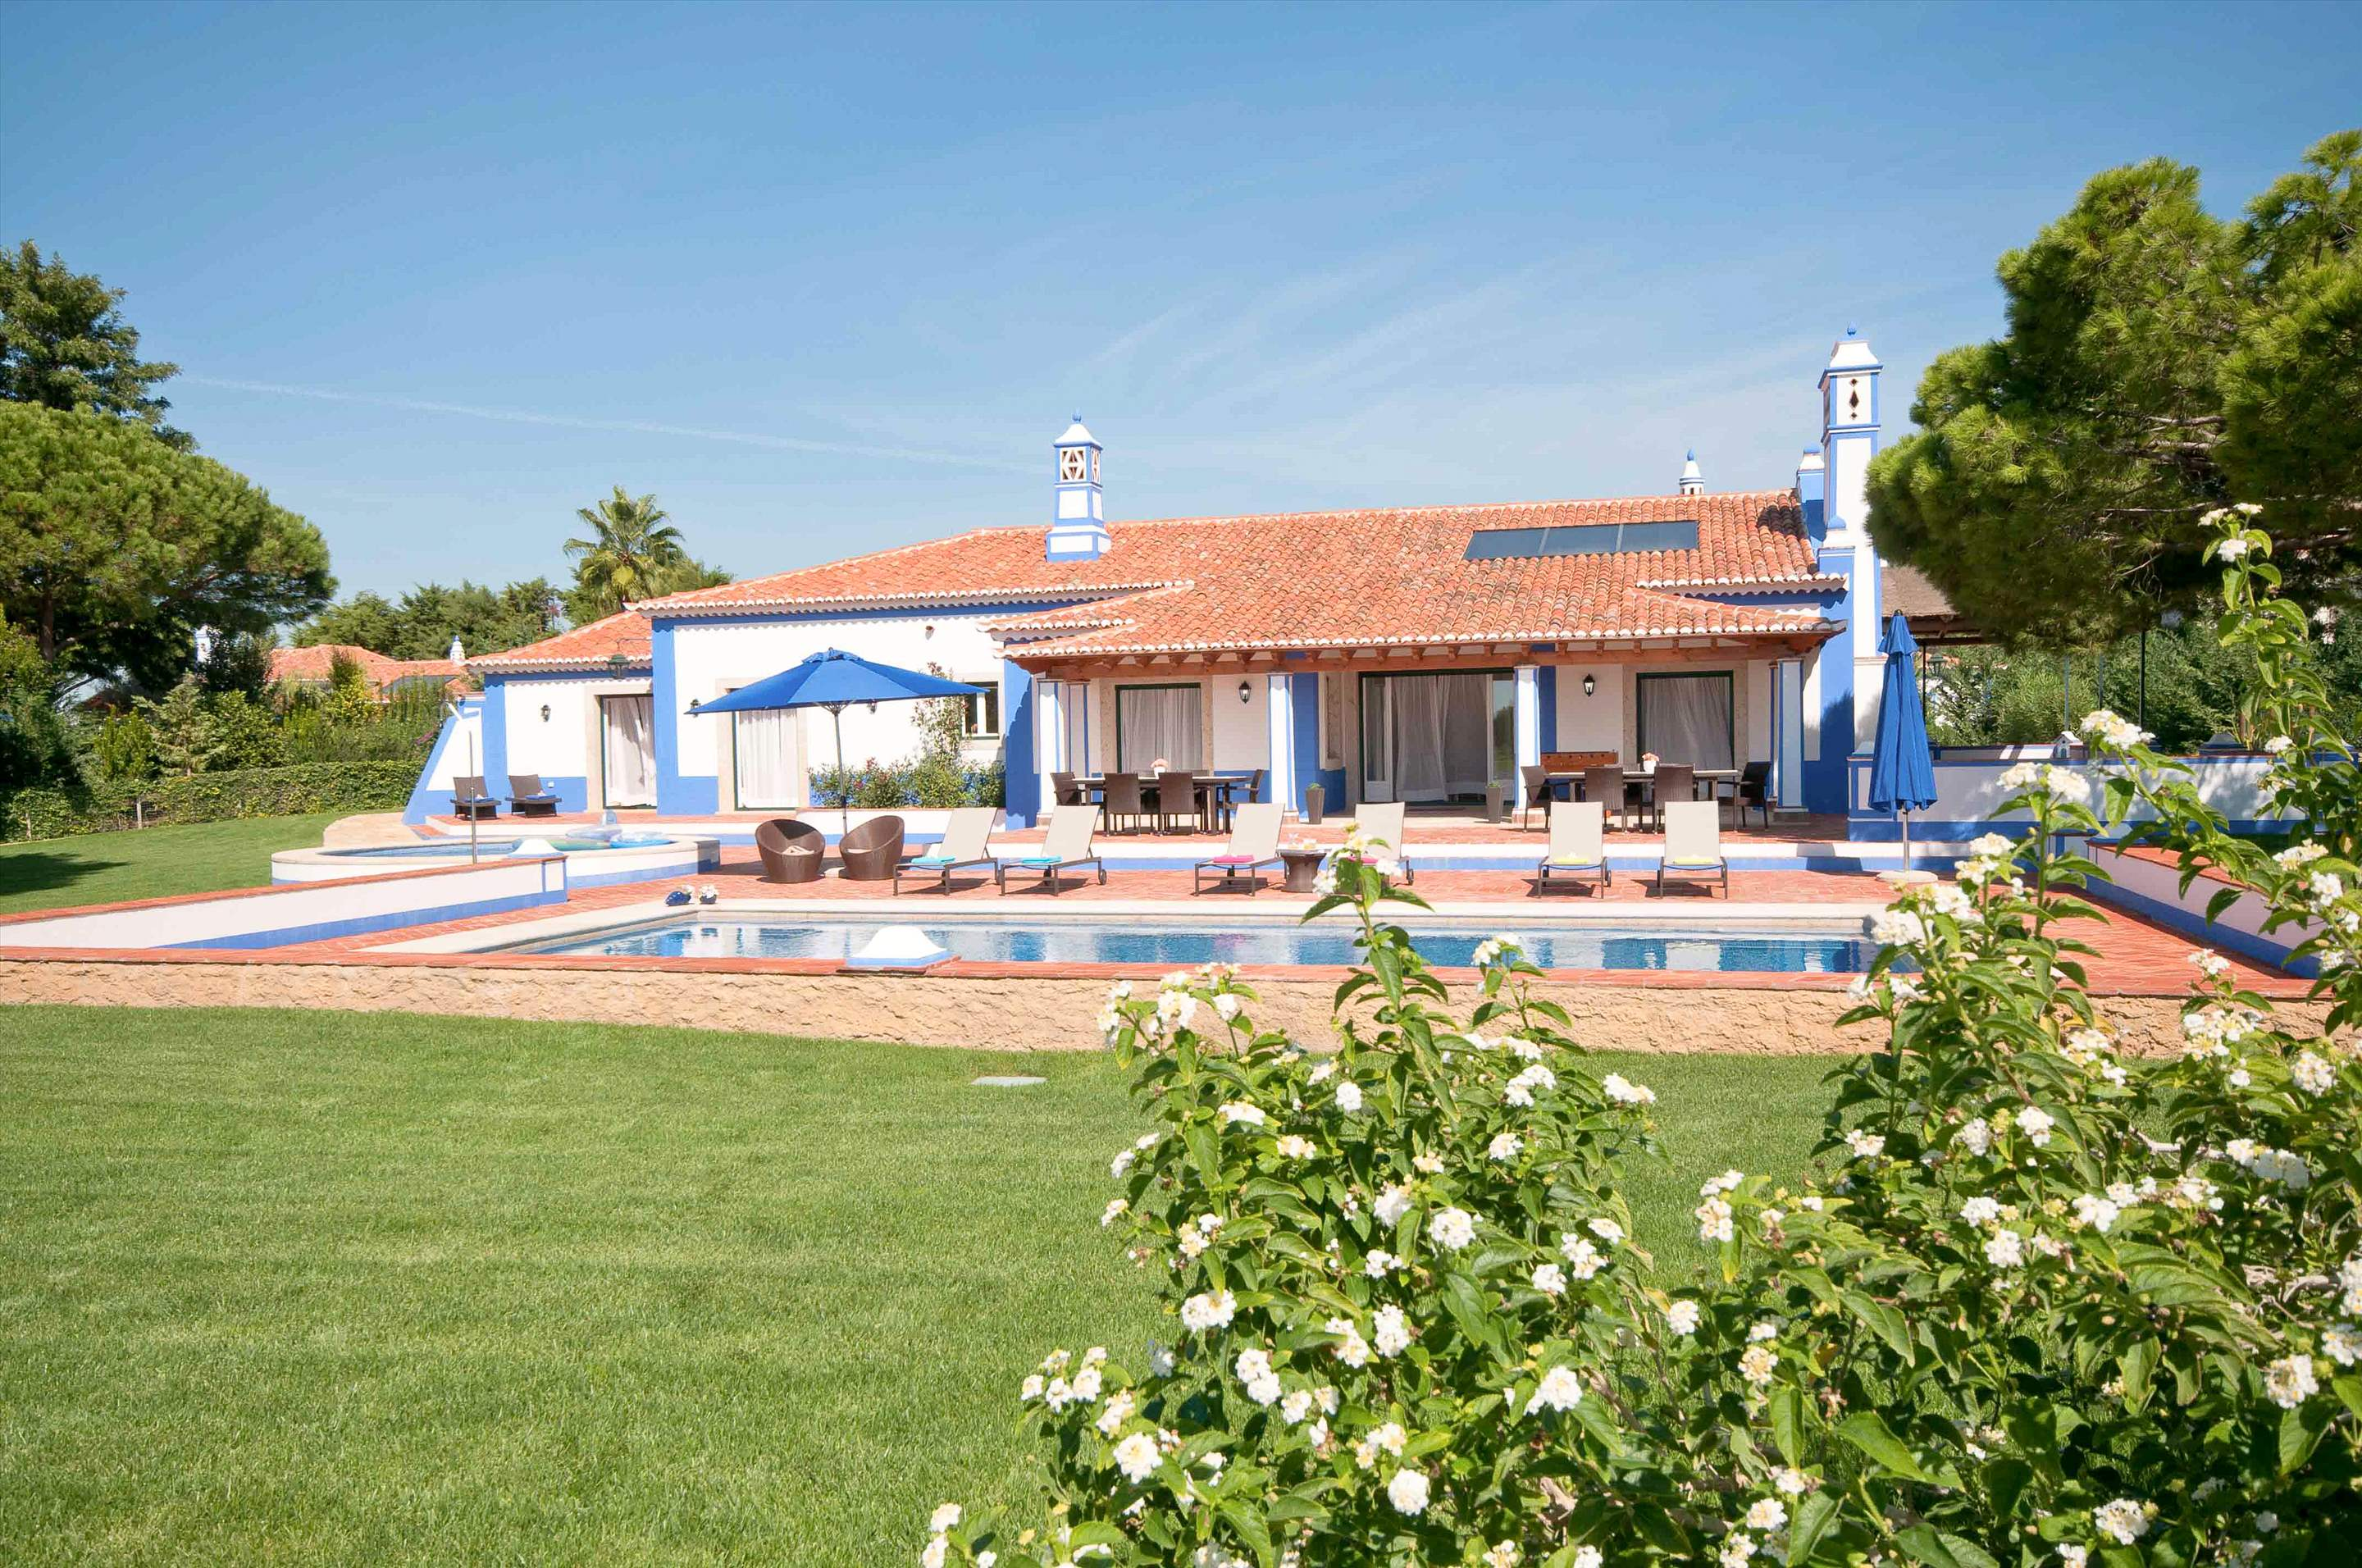 Villa Mirante 1, Five Bedroom Rate, 5 bedroom villa in Albufeira Area, Algarve Photo #1